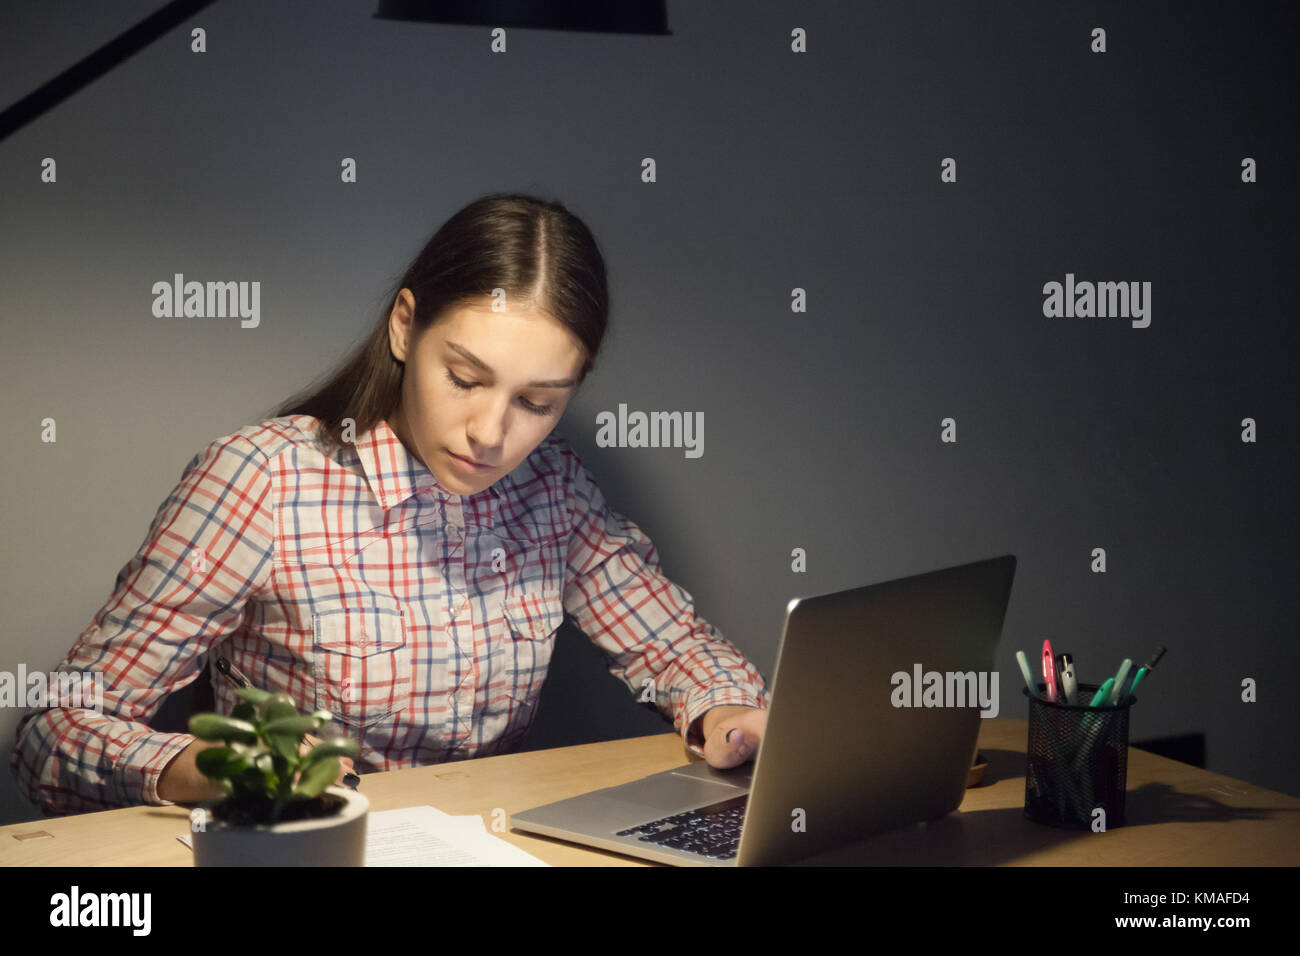 Millennial businesswoman in casual shirt working on laptop in office at night shift. Concentrated female worker Stock Photo